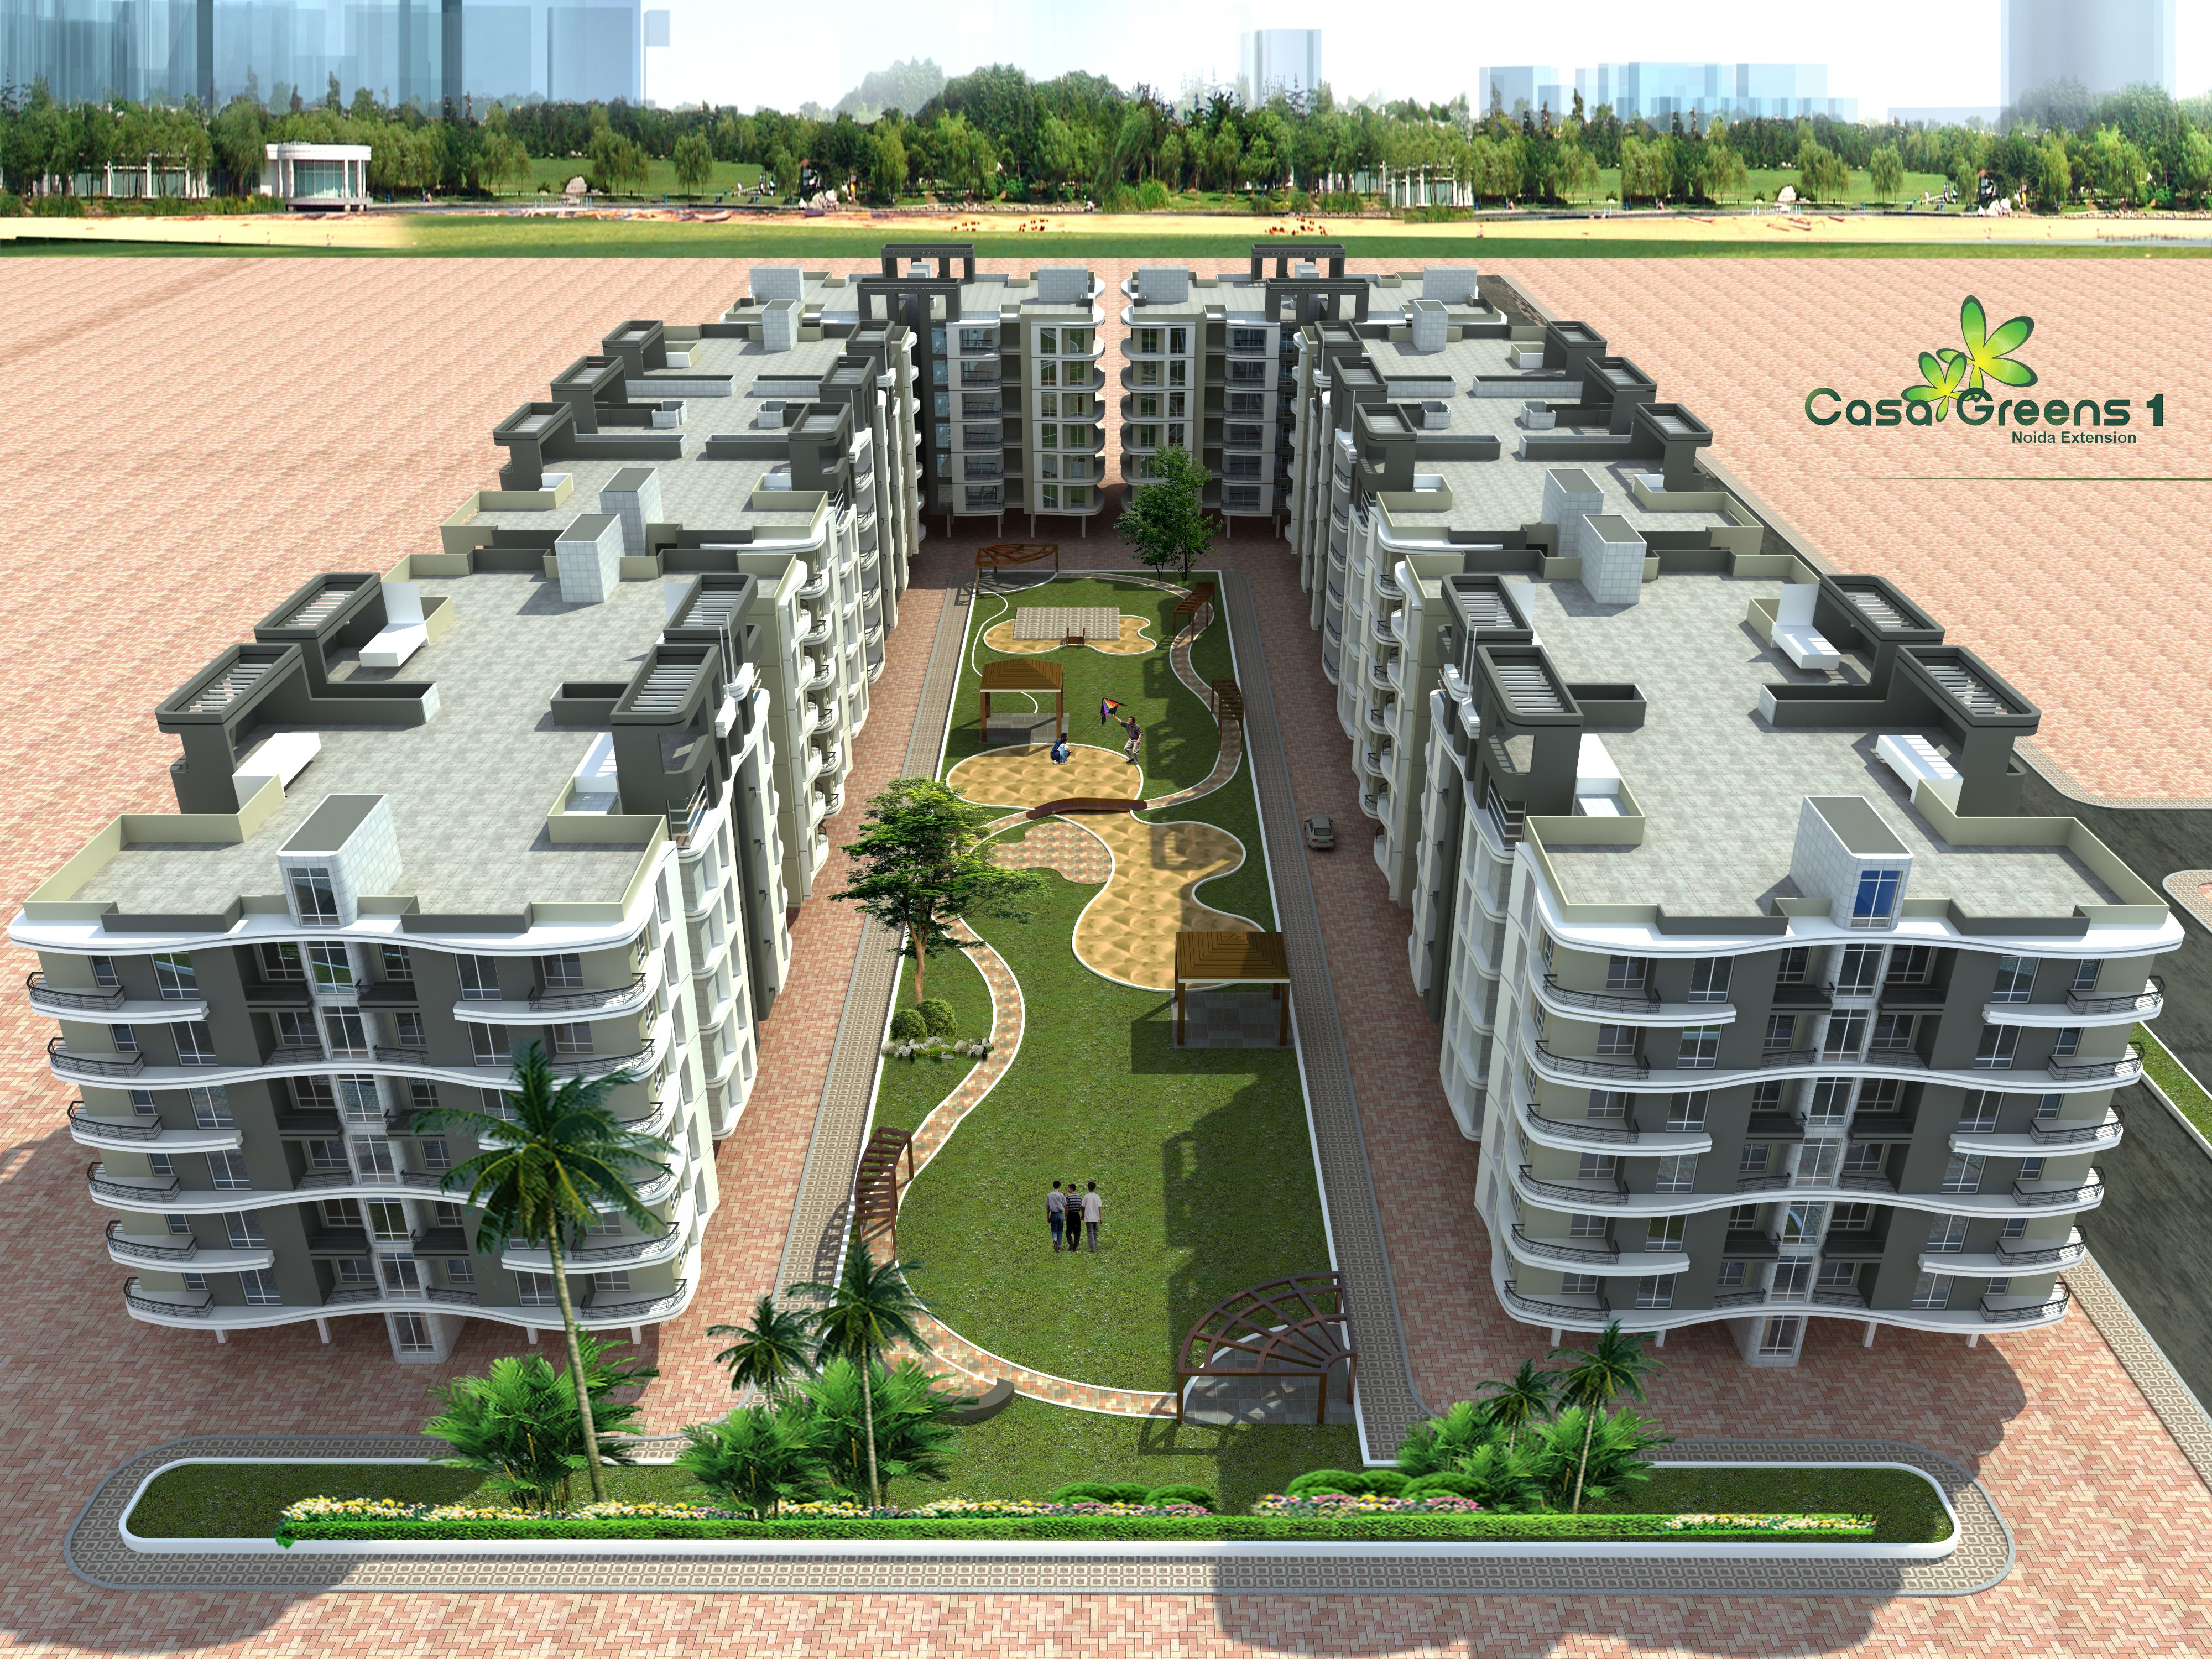 Casa Greens 1 The Project Is Fully Loaded With All Luxury And Comfort It Provides You Peaceful And Healthy L Luxury Flats Noida Free Classified Ads